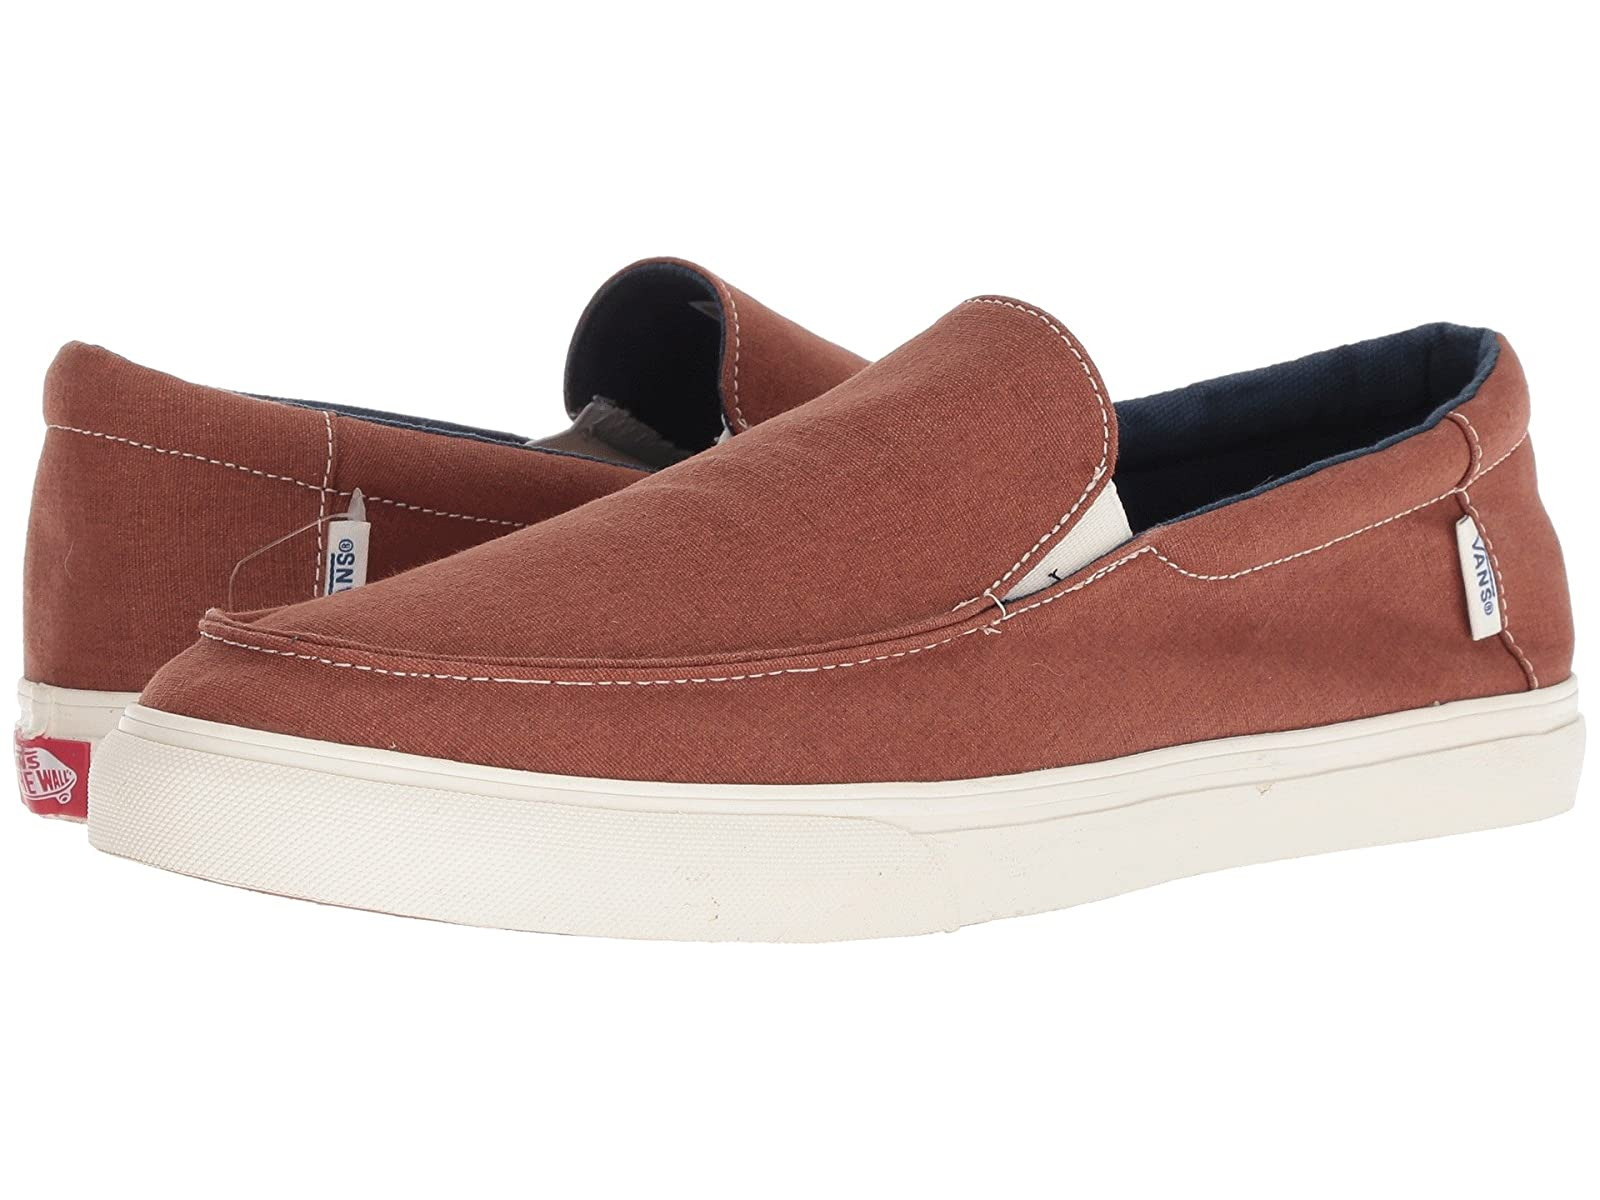 Vans Bali SFAtmospheric grades have affordable shoes